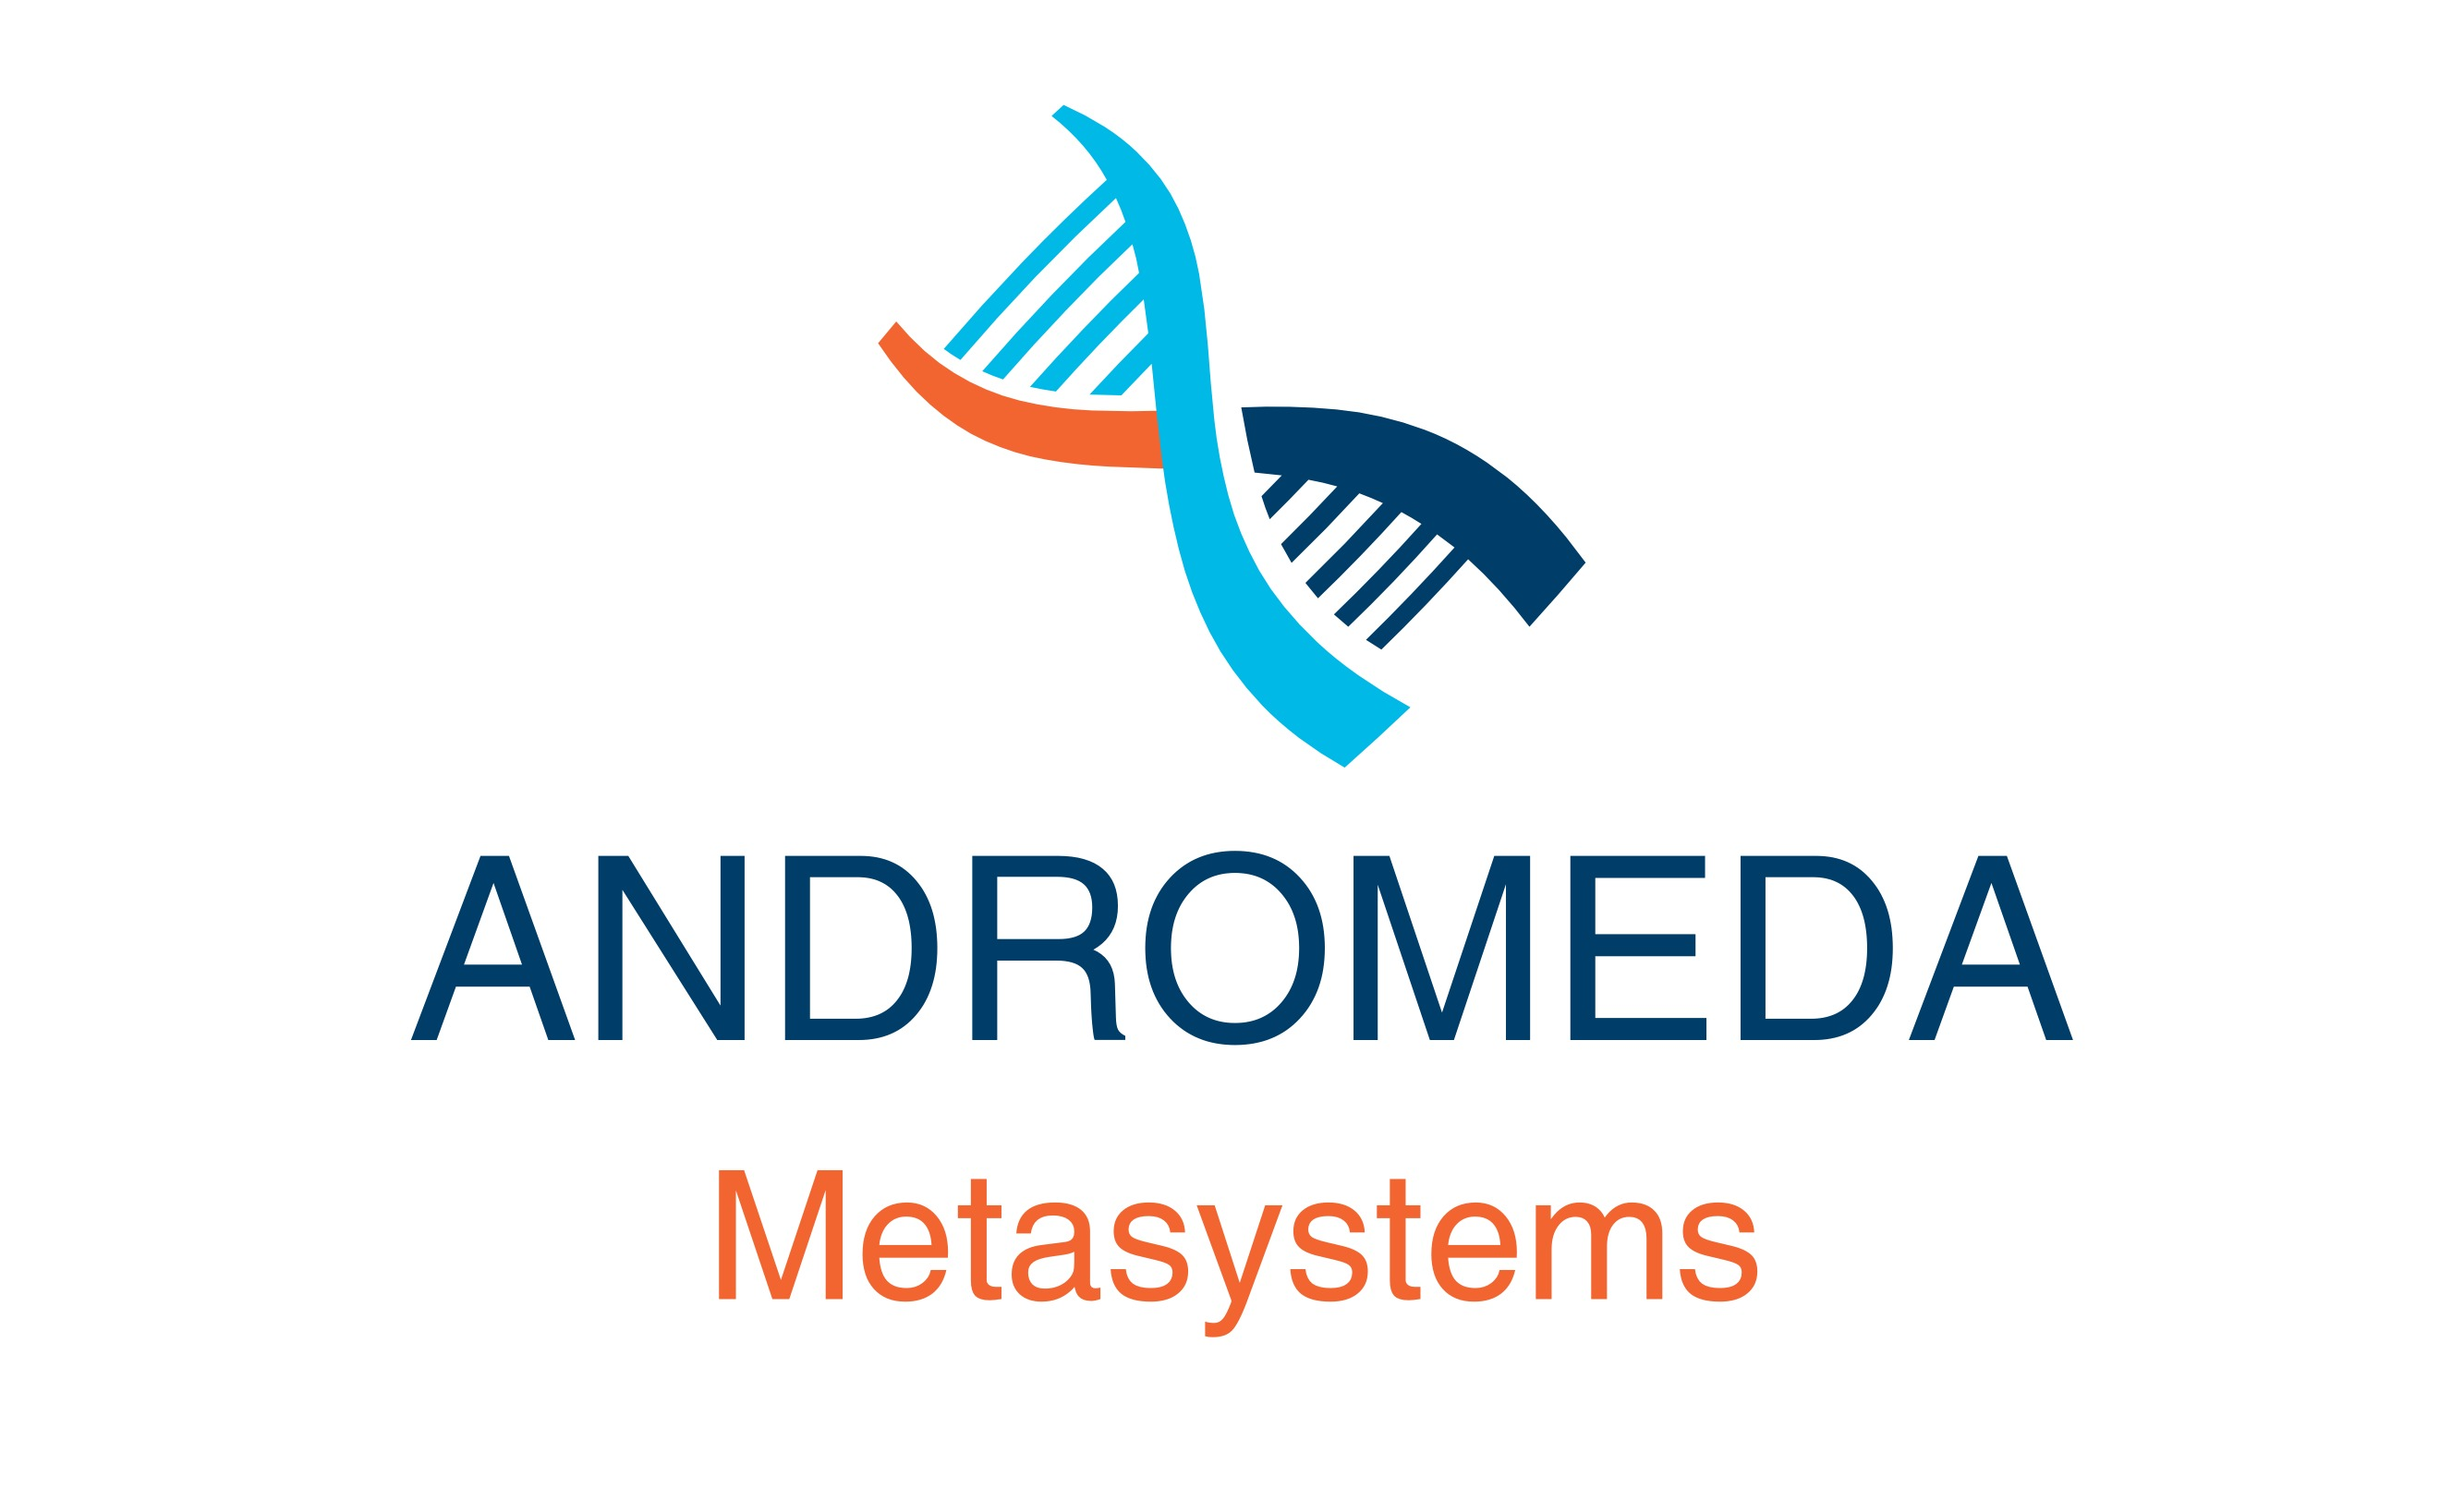 Andromeda Metasystems